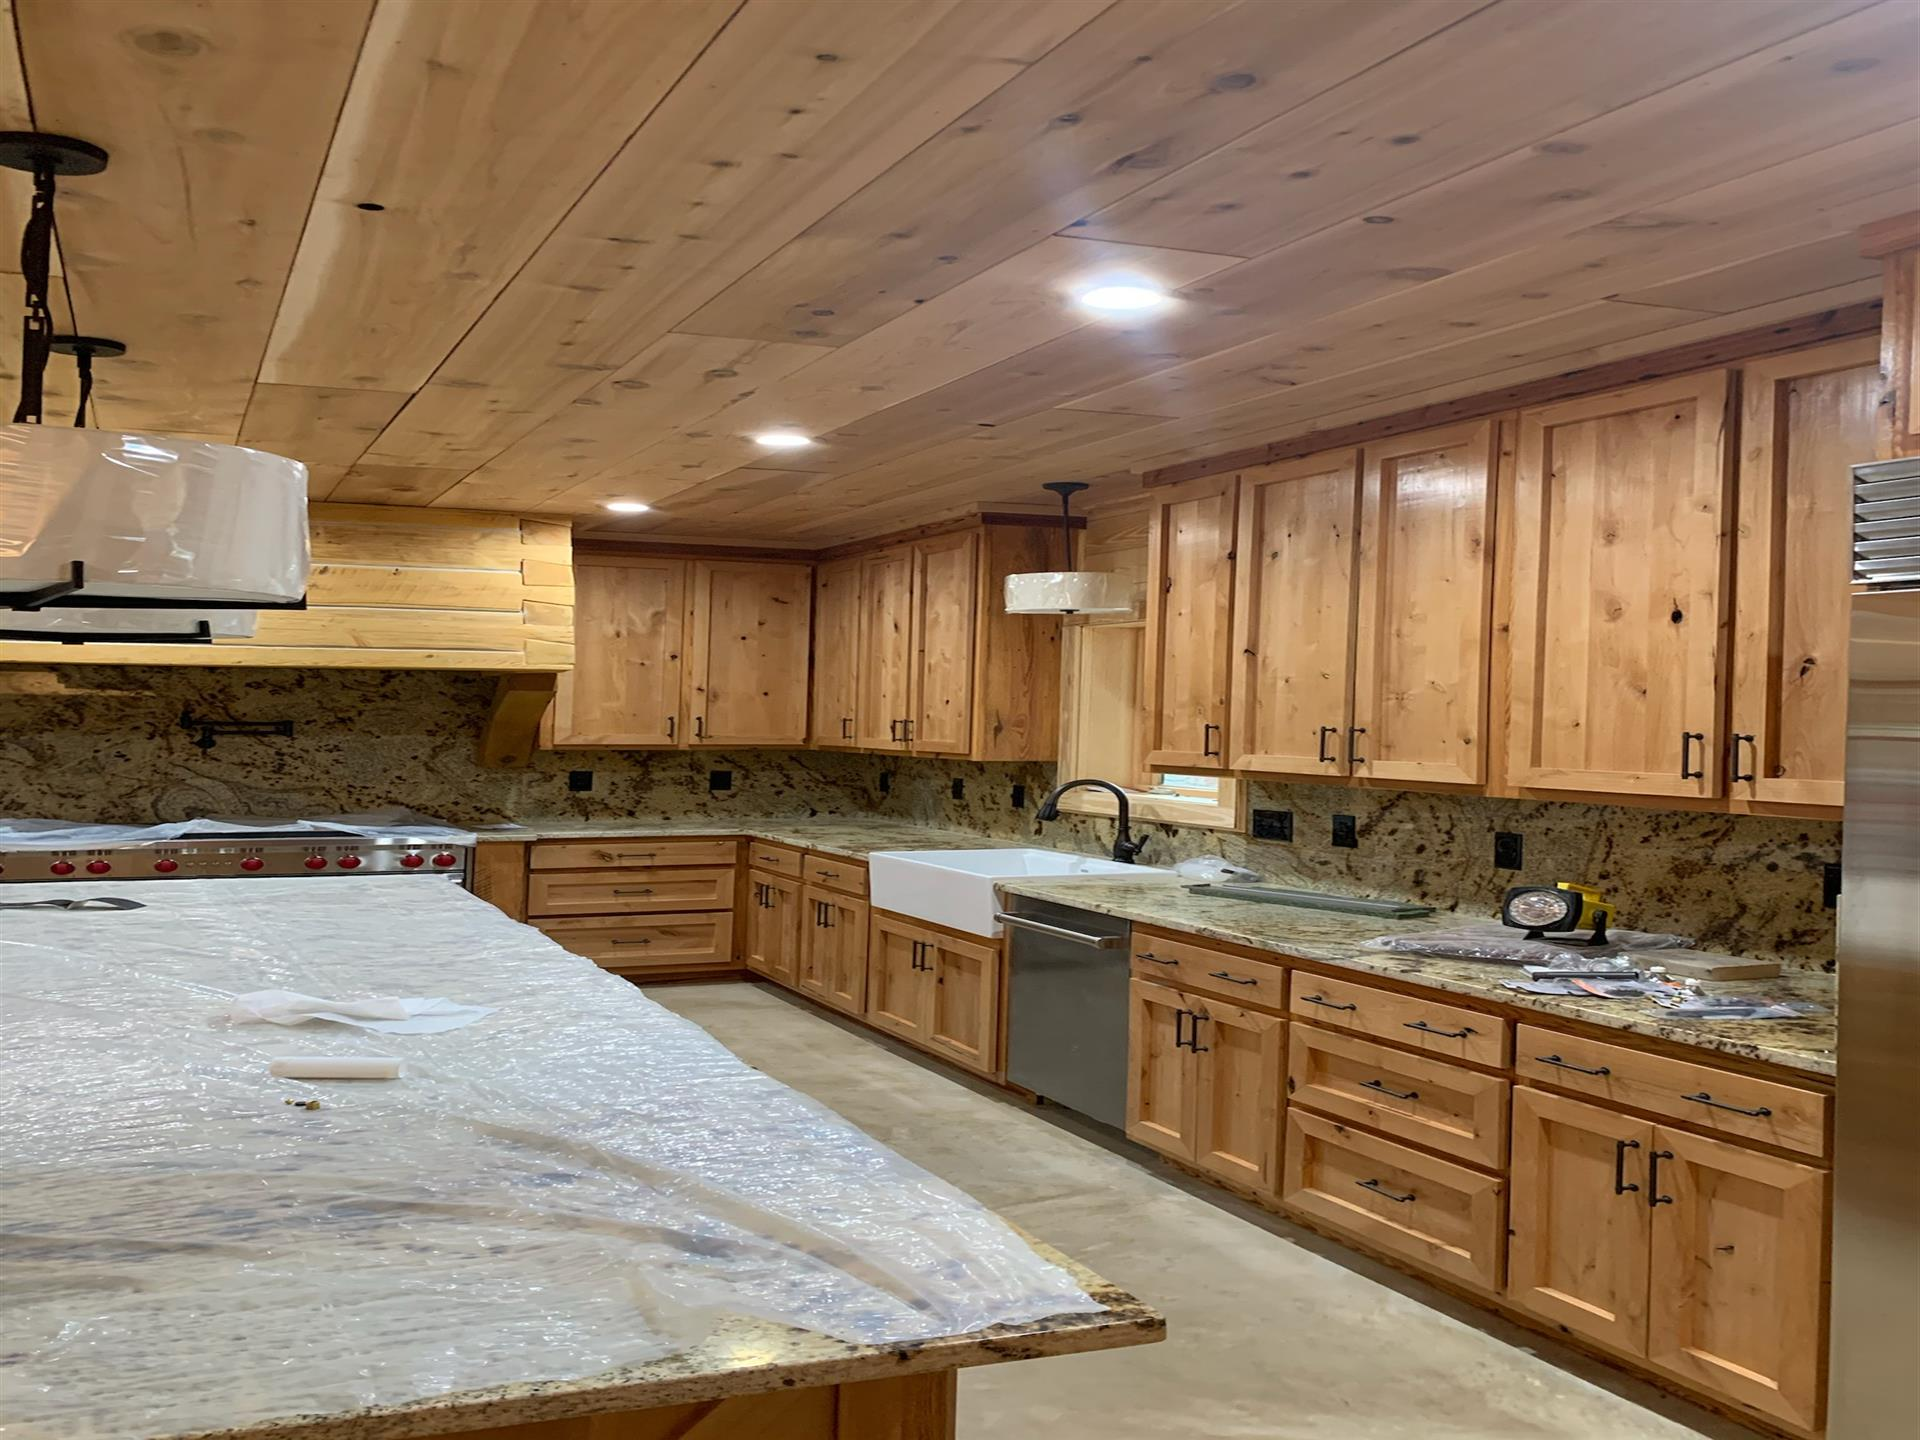 large open kitchen with wooden cabinets and drawers. Large island countertop with plastic cover on top